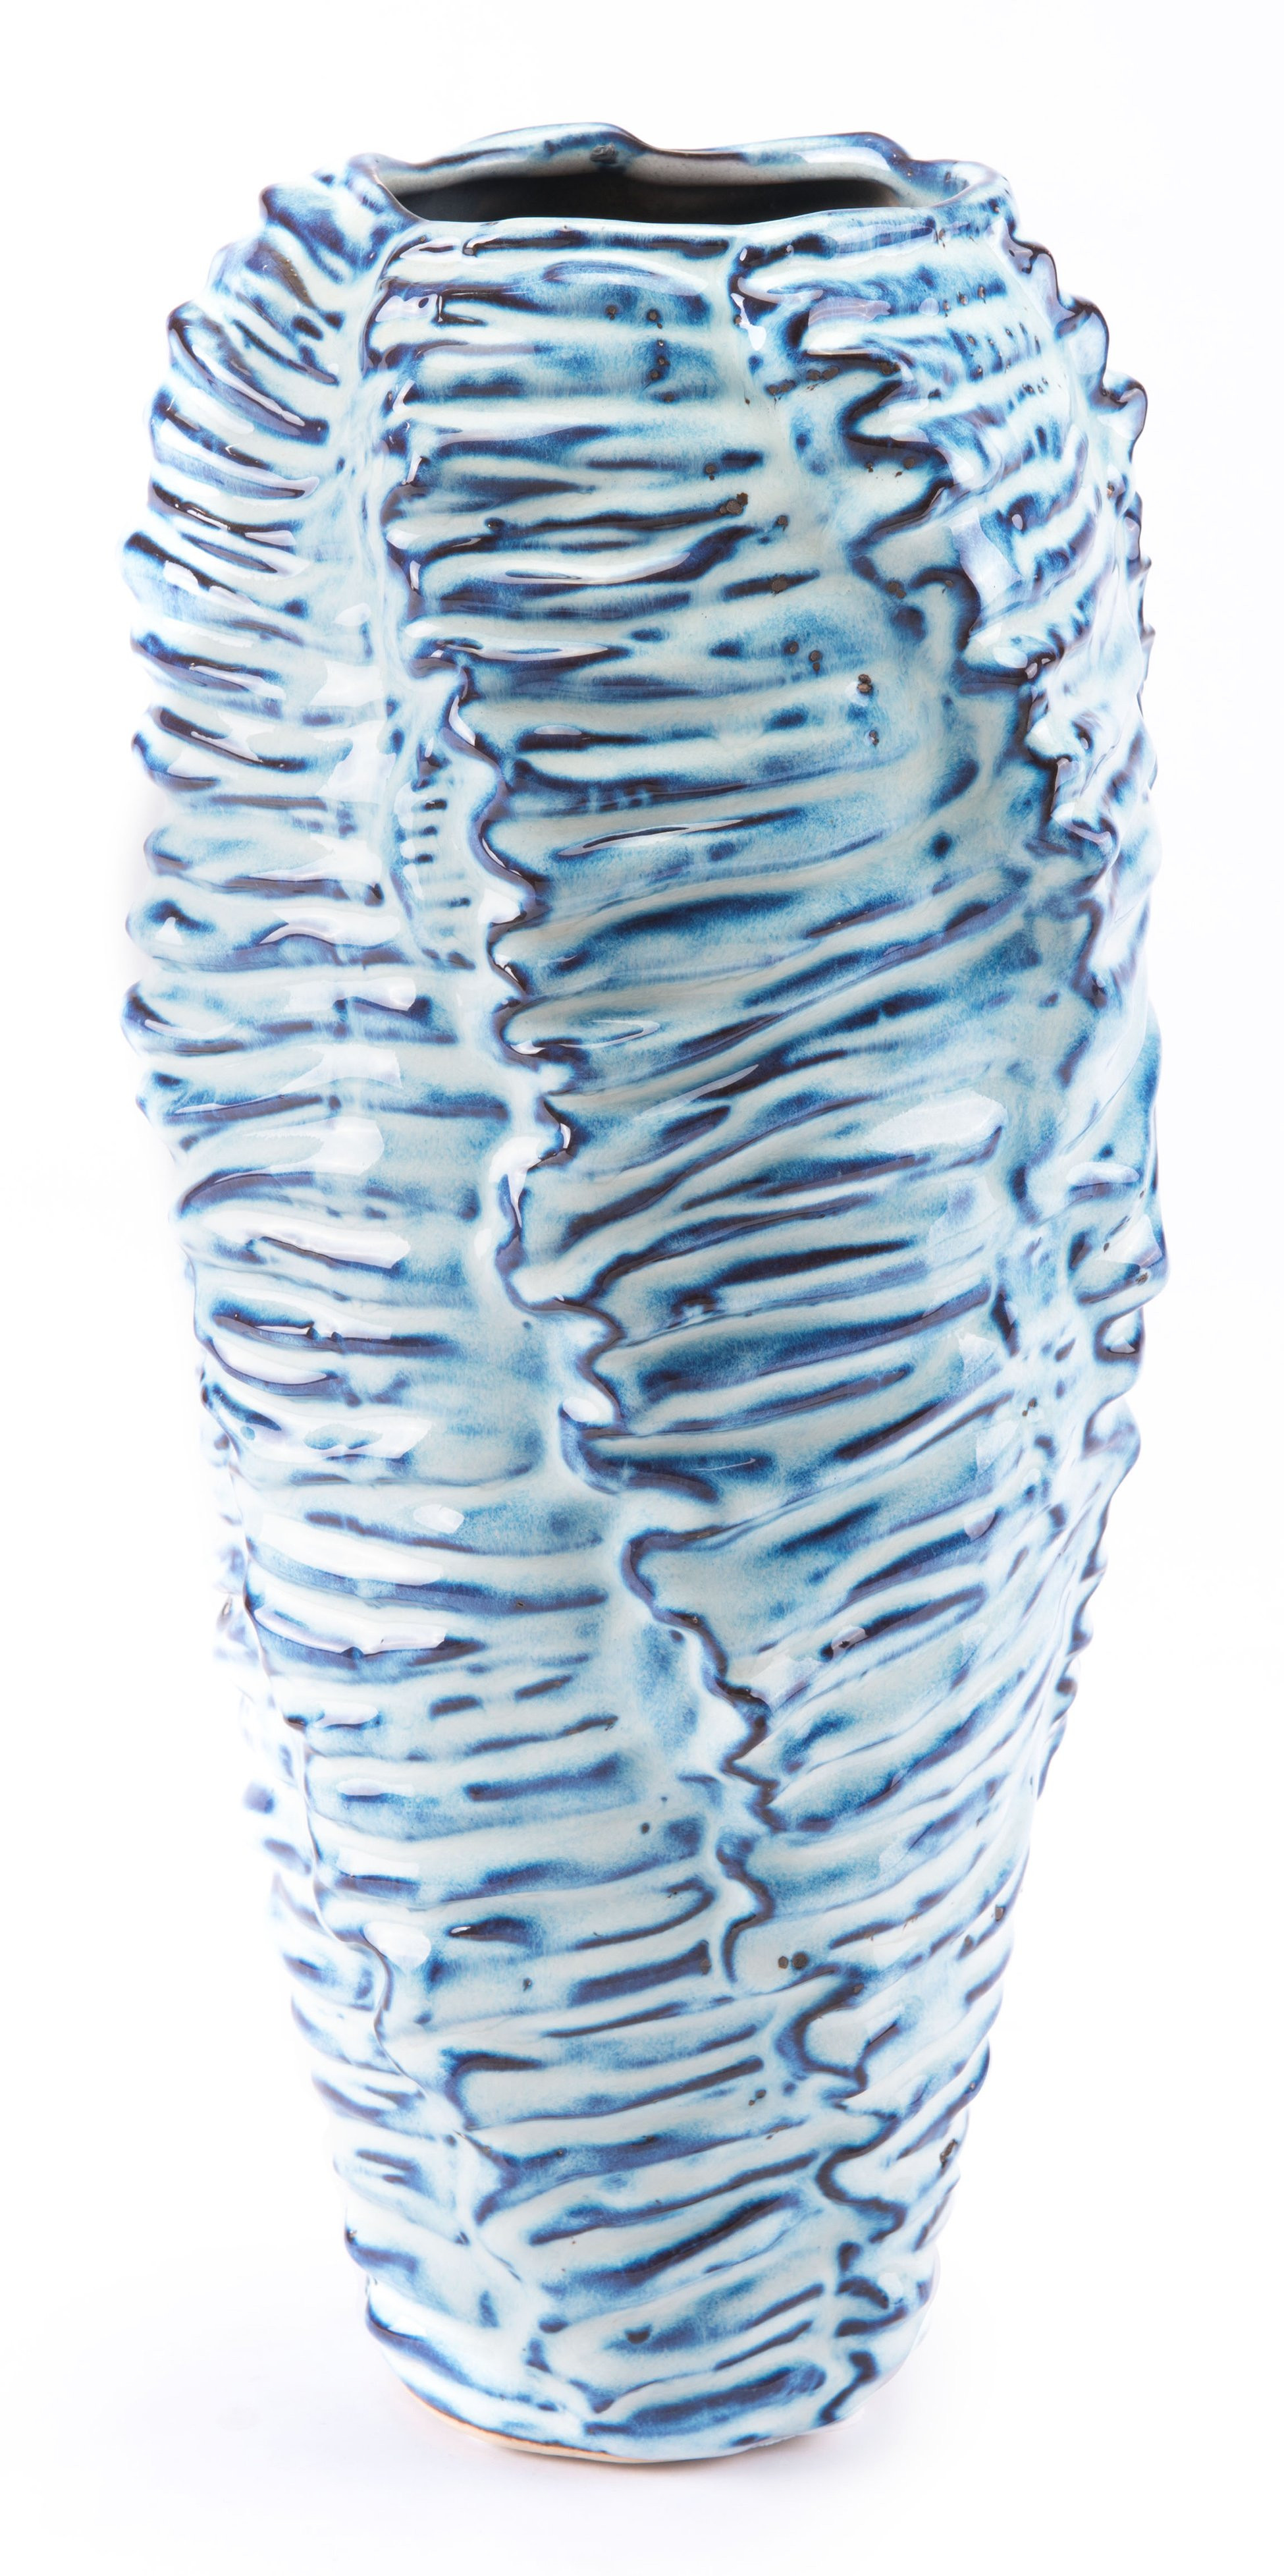 tall blue vase of mar tall vase products pinterest tall vases and products with mar tall vase